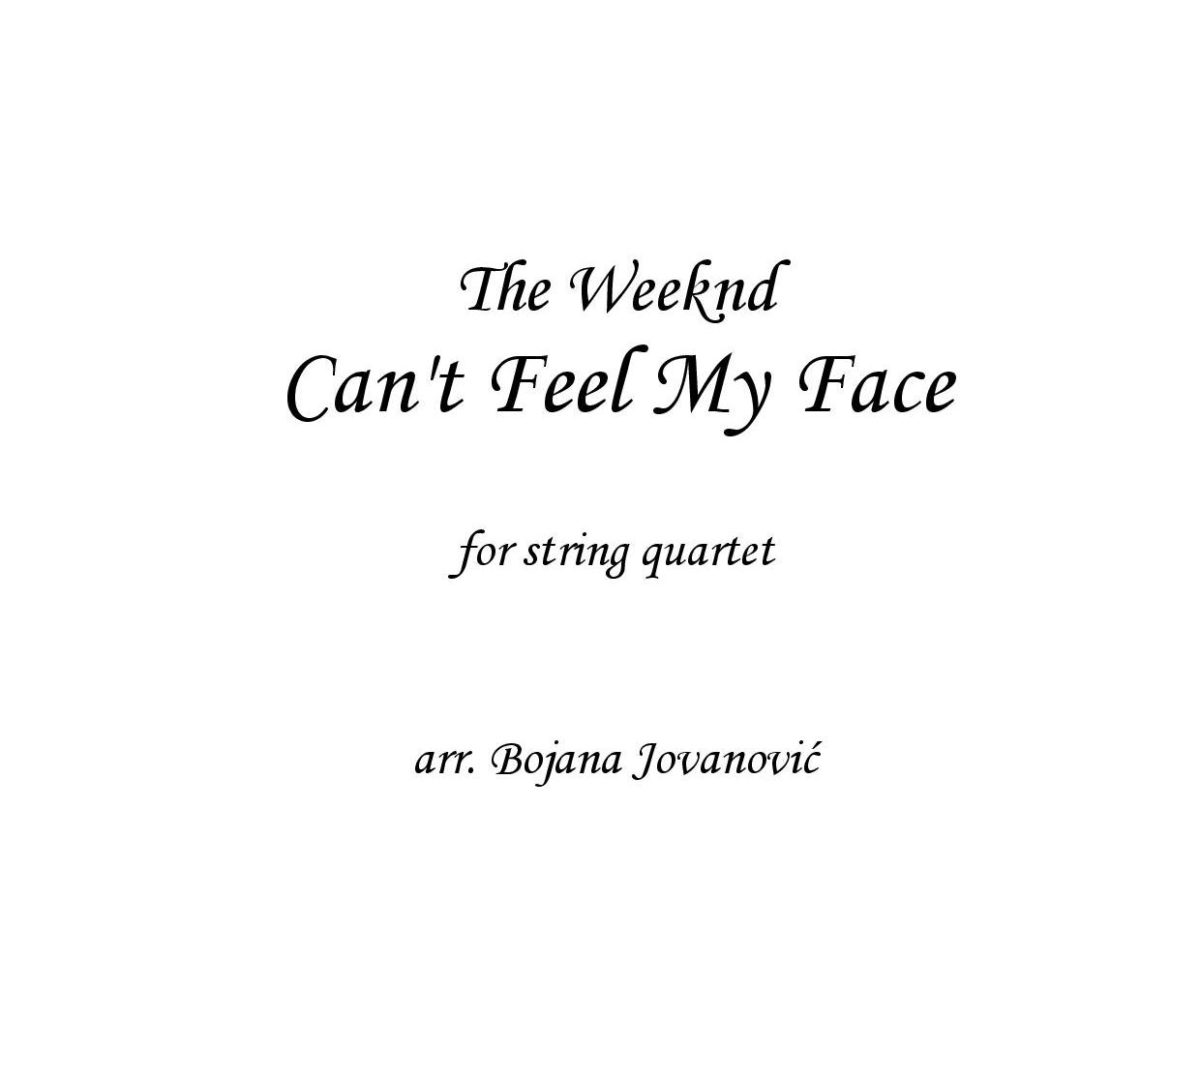 Can't feel my face (The Weeknd) - Sheet Music